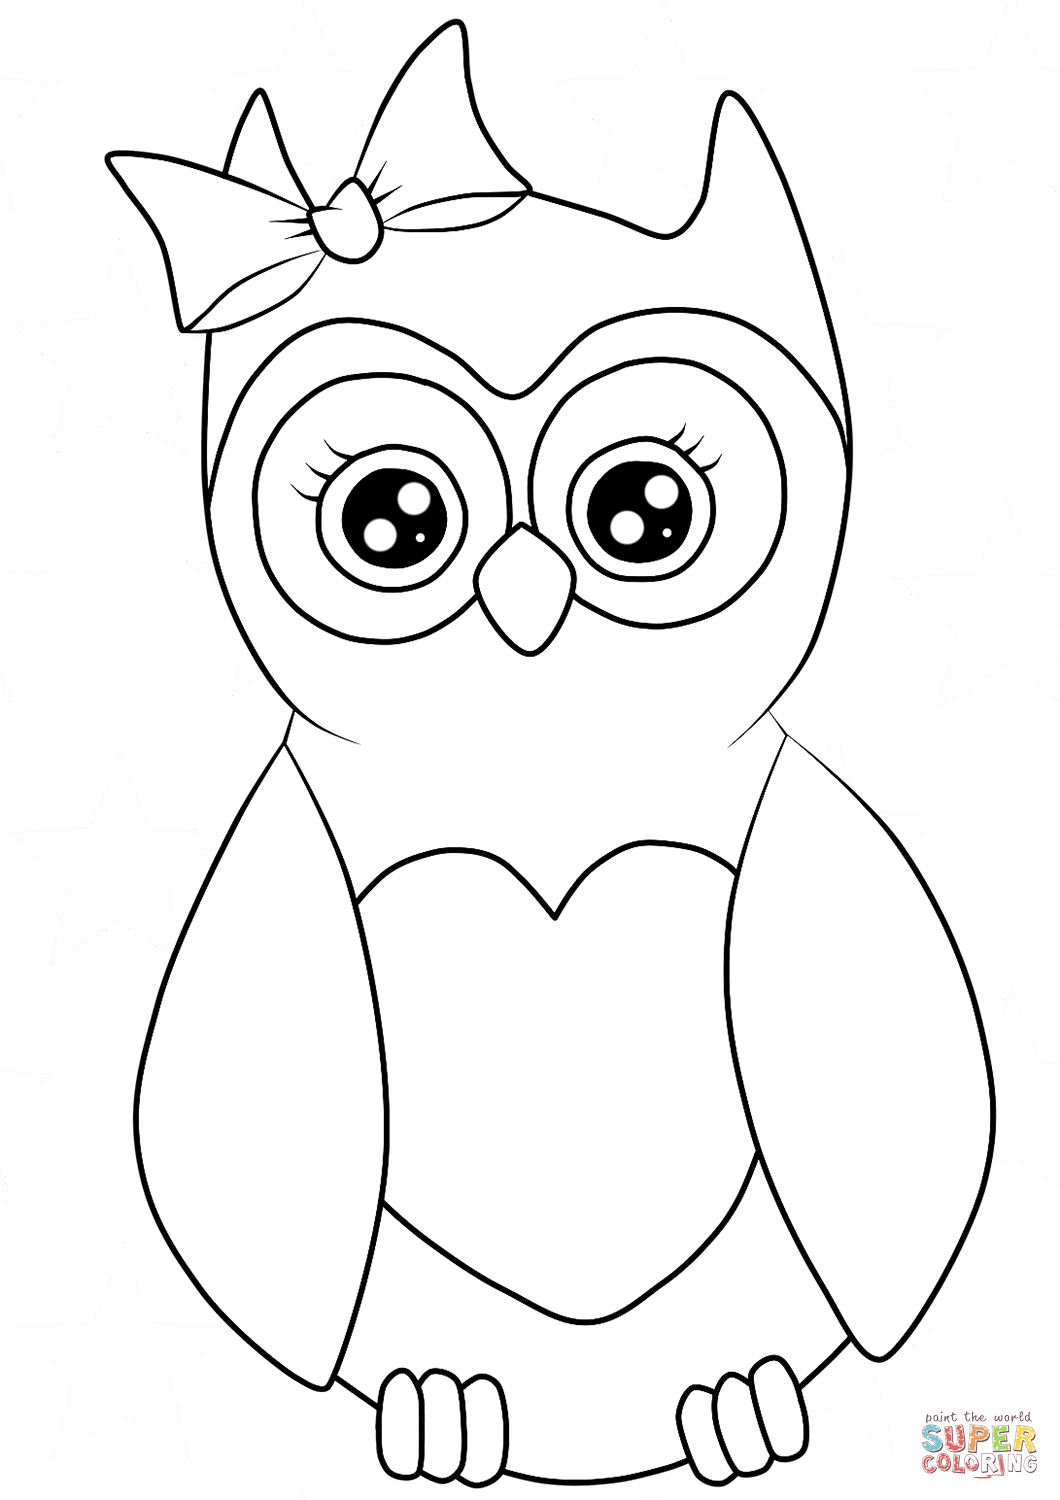 owl coloring pages free printable adult owl coloring pages printable free owl coloring printable pages